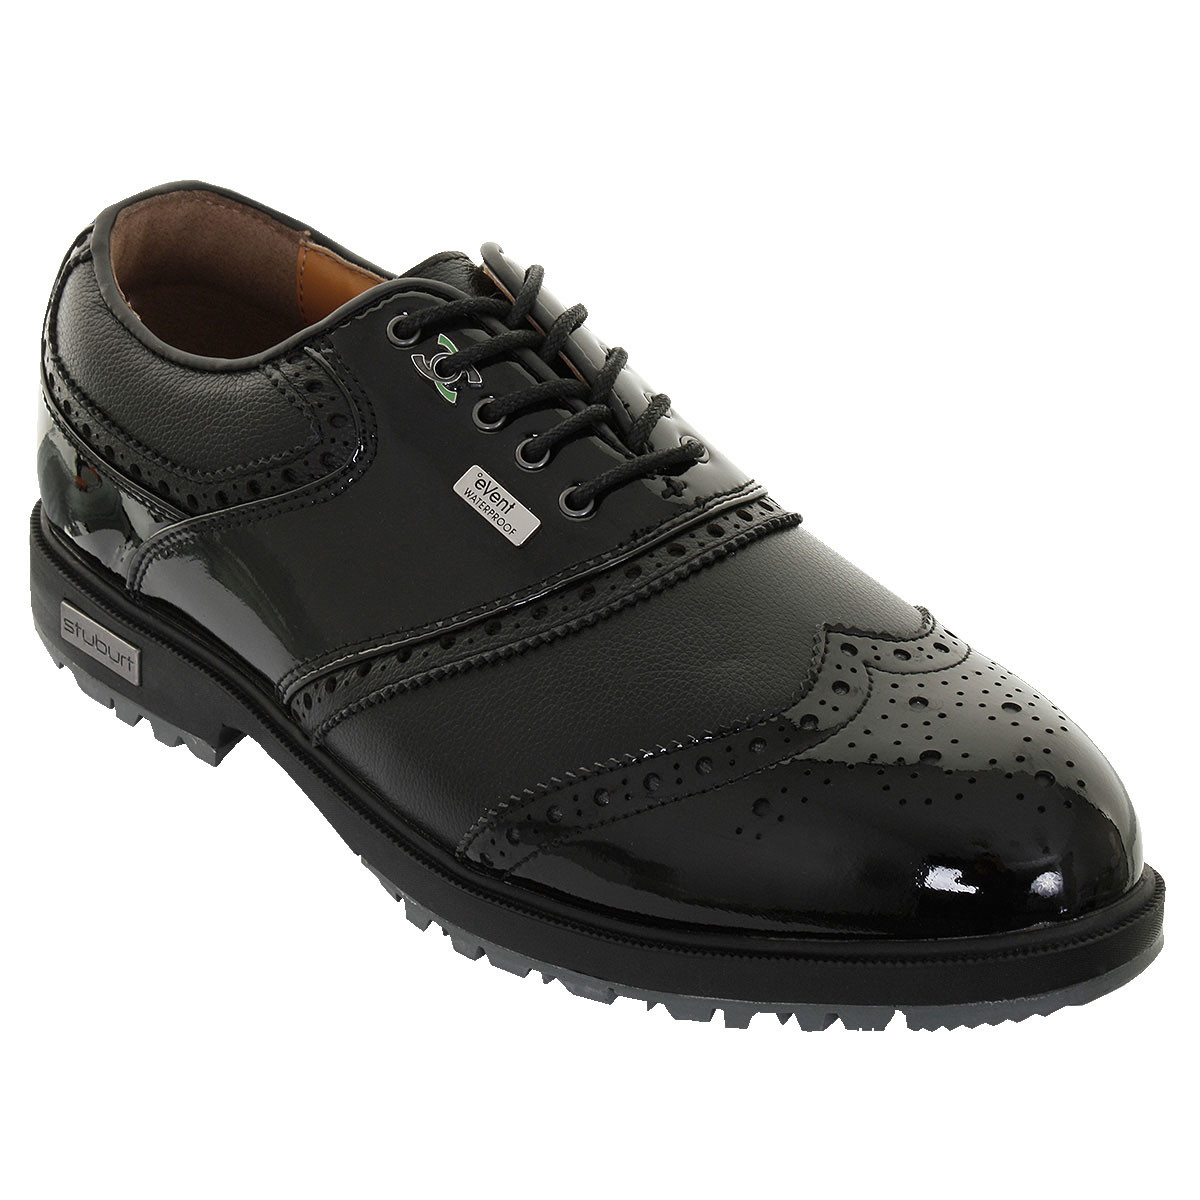 premium selection 53465 3e4d7 Stuburt 2018 Mens Waterproof Classic Tour Event Spikeless Leather Golf Shoes